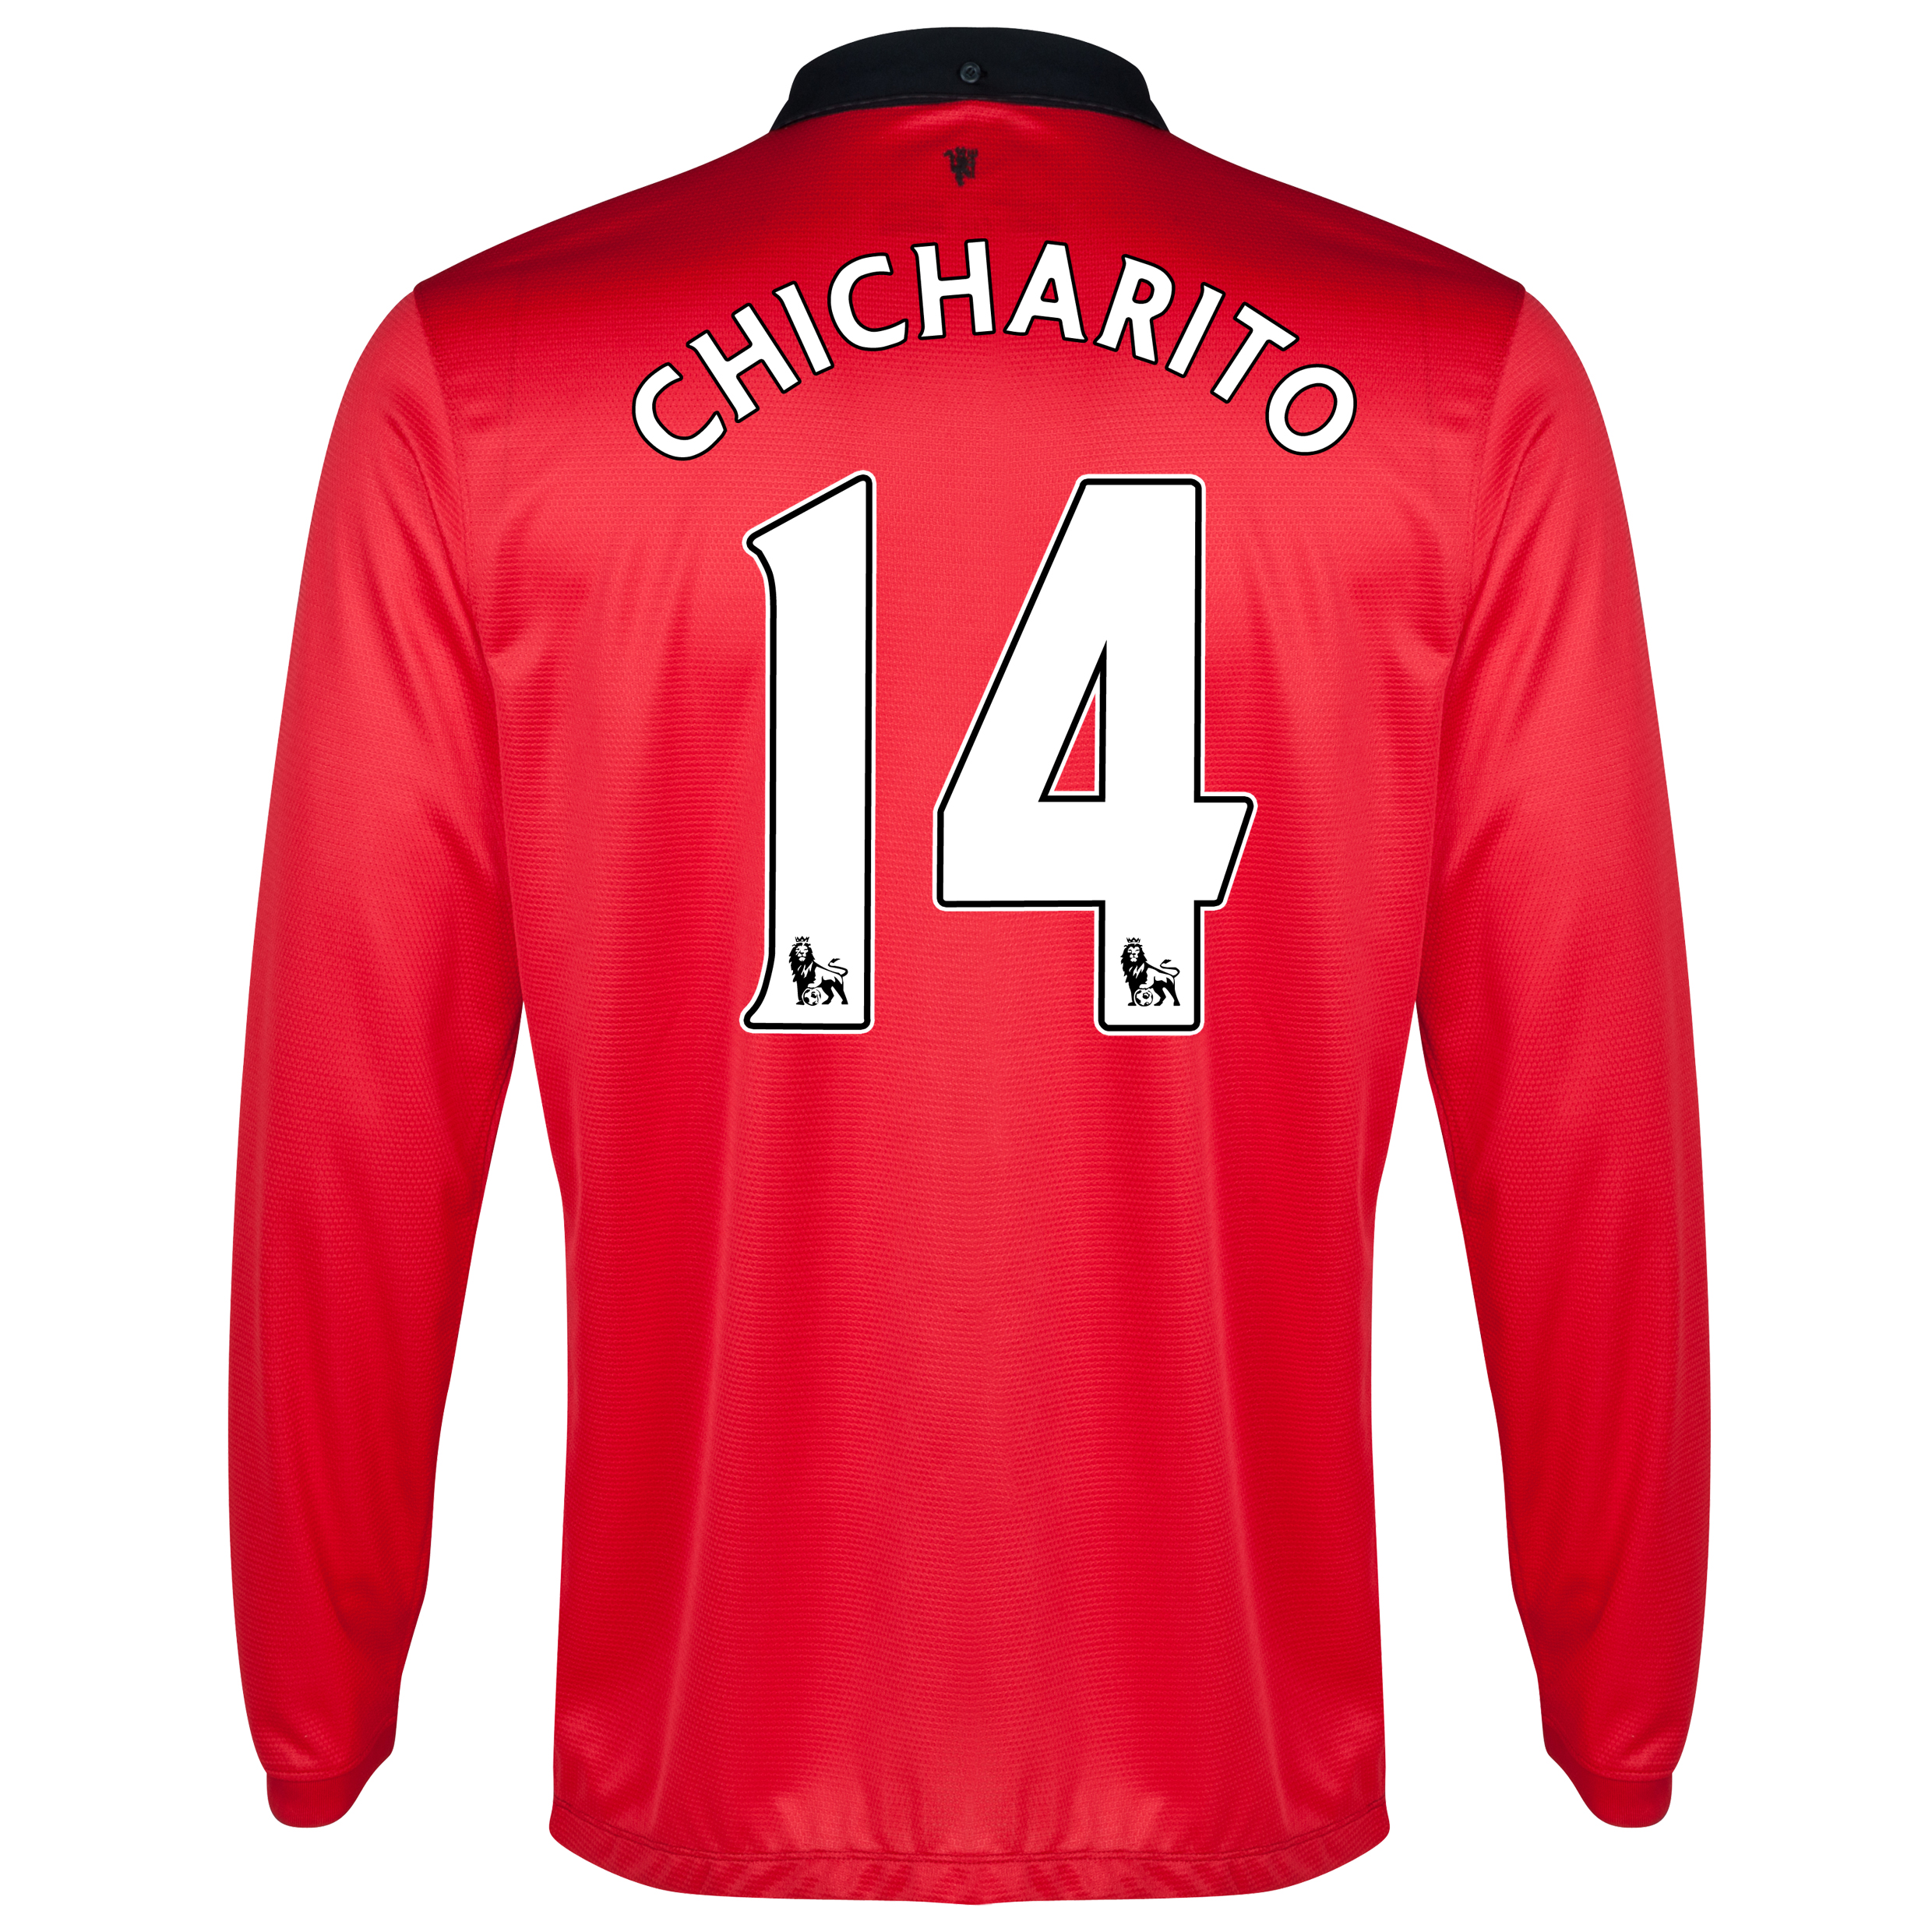 Manchester United Home Shirt 2013/14 - Long Sleeved with Chicharito 14 printing